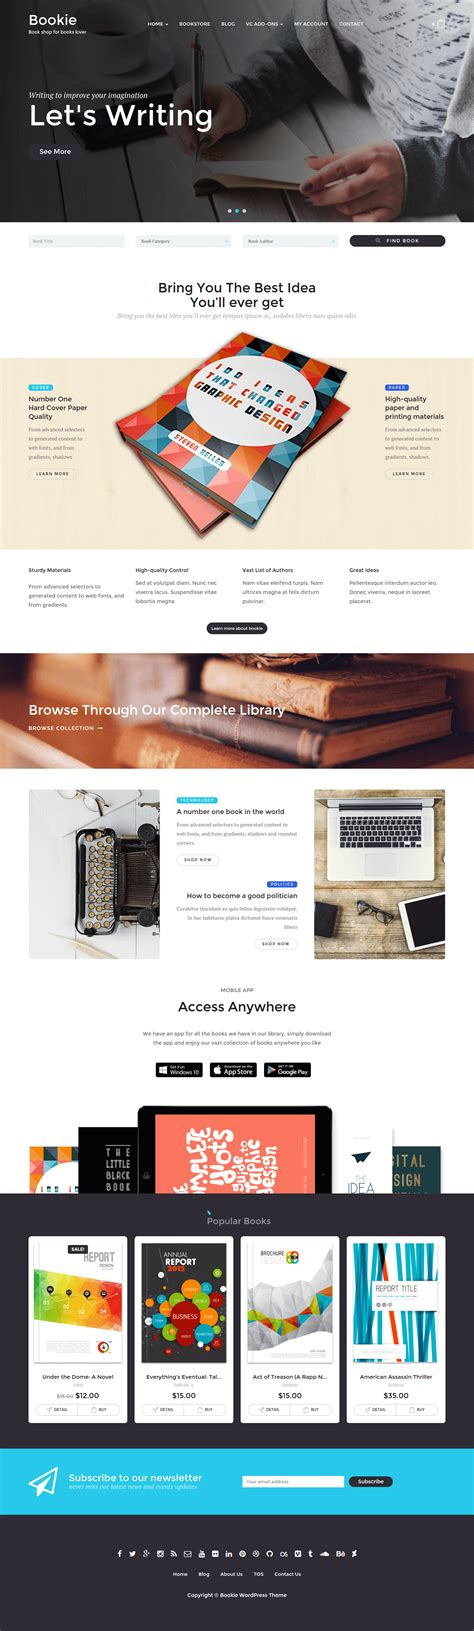 wordpress templates for books bookie wordpress theme for books store by tokopress